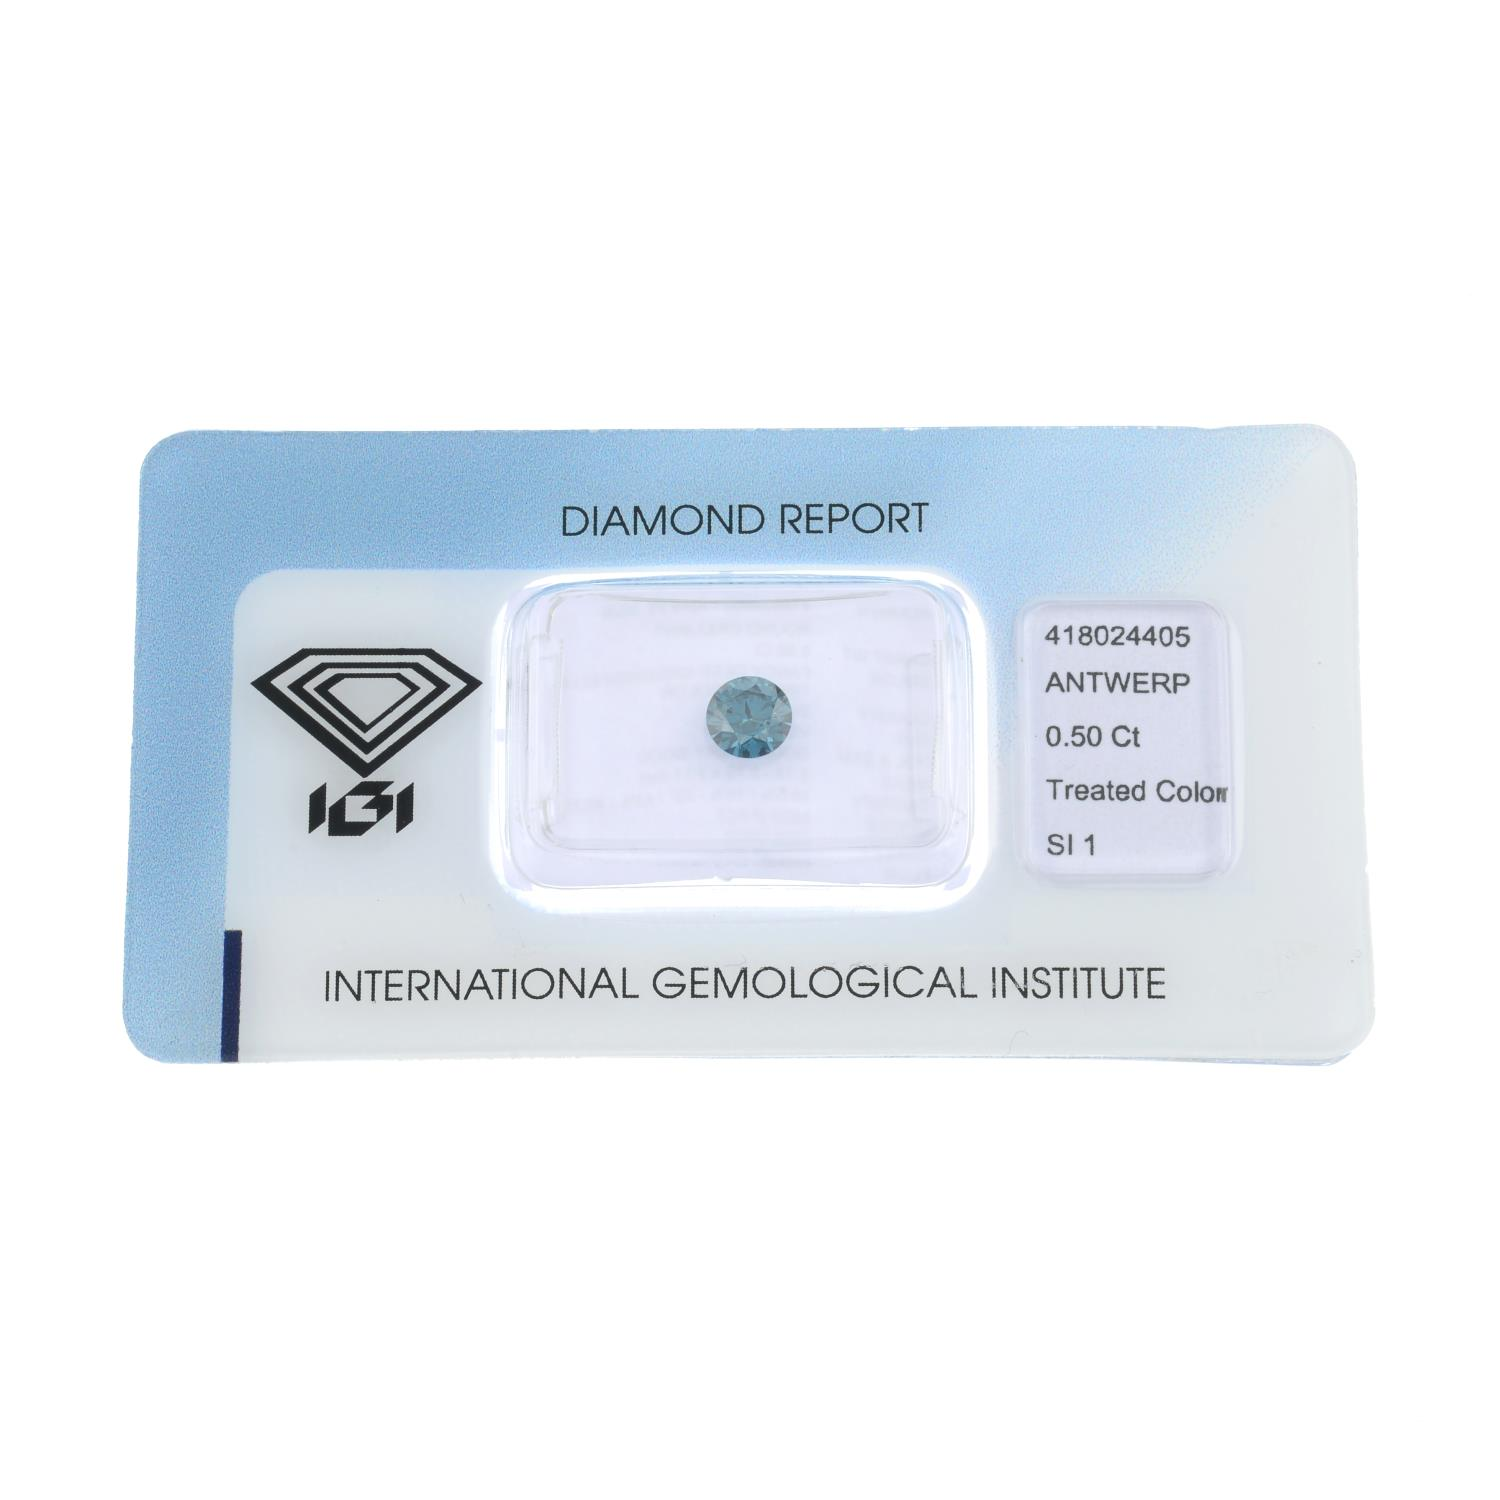 A brilliant cut blue diamond weighing 0.50ct within security seal.